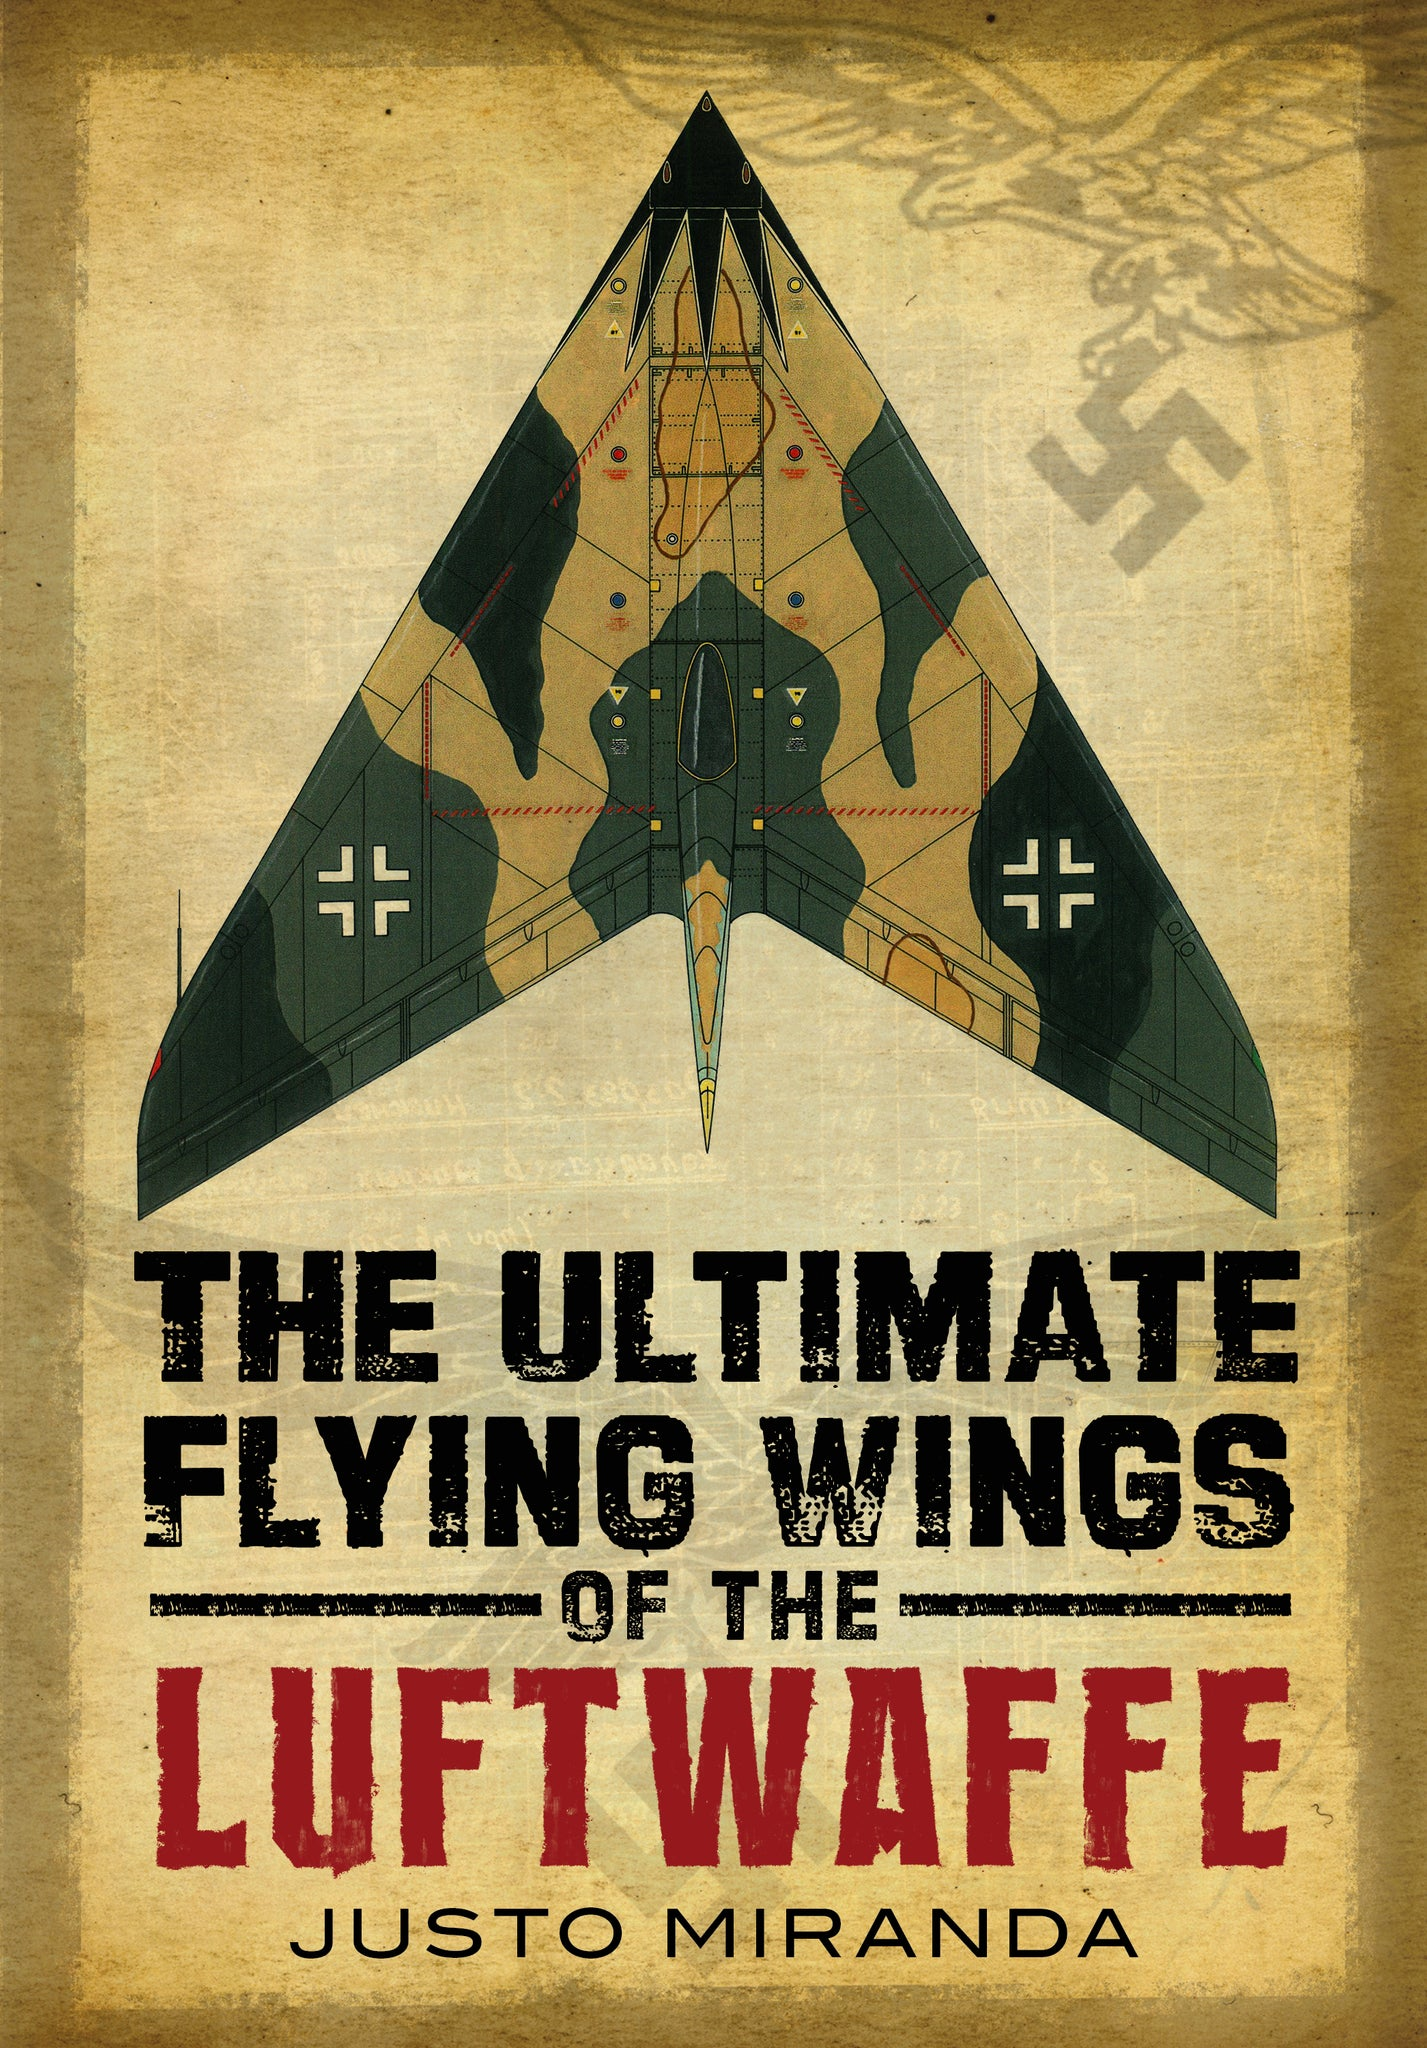 The Ultimate Flying Wings of the Luftwaffe - available from Fonthill Media